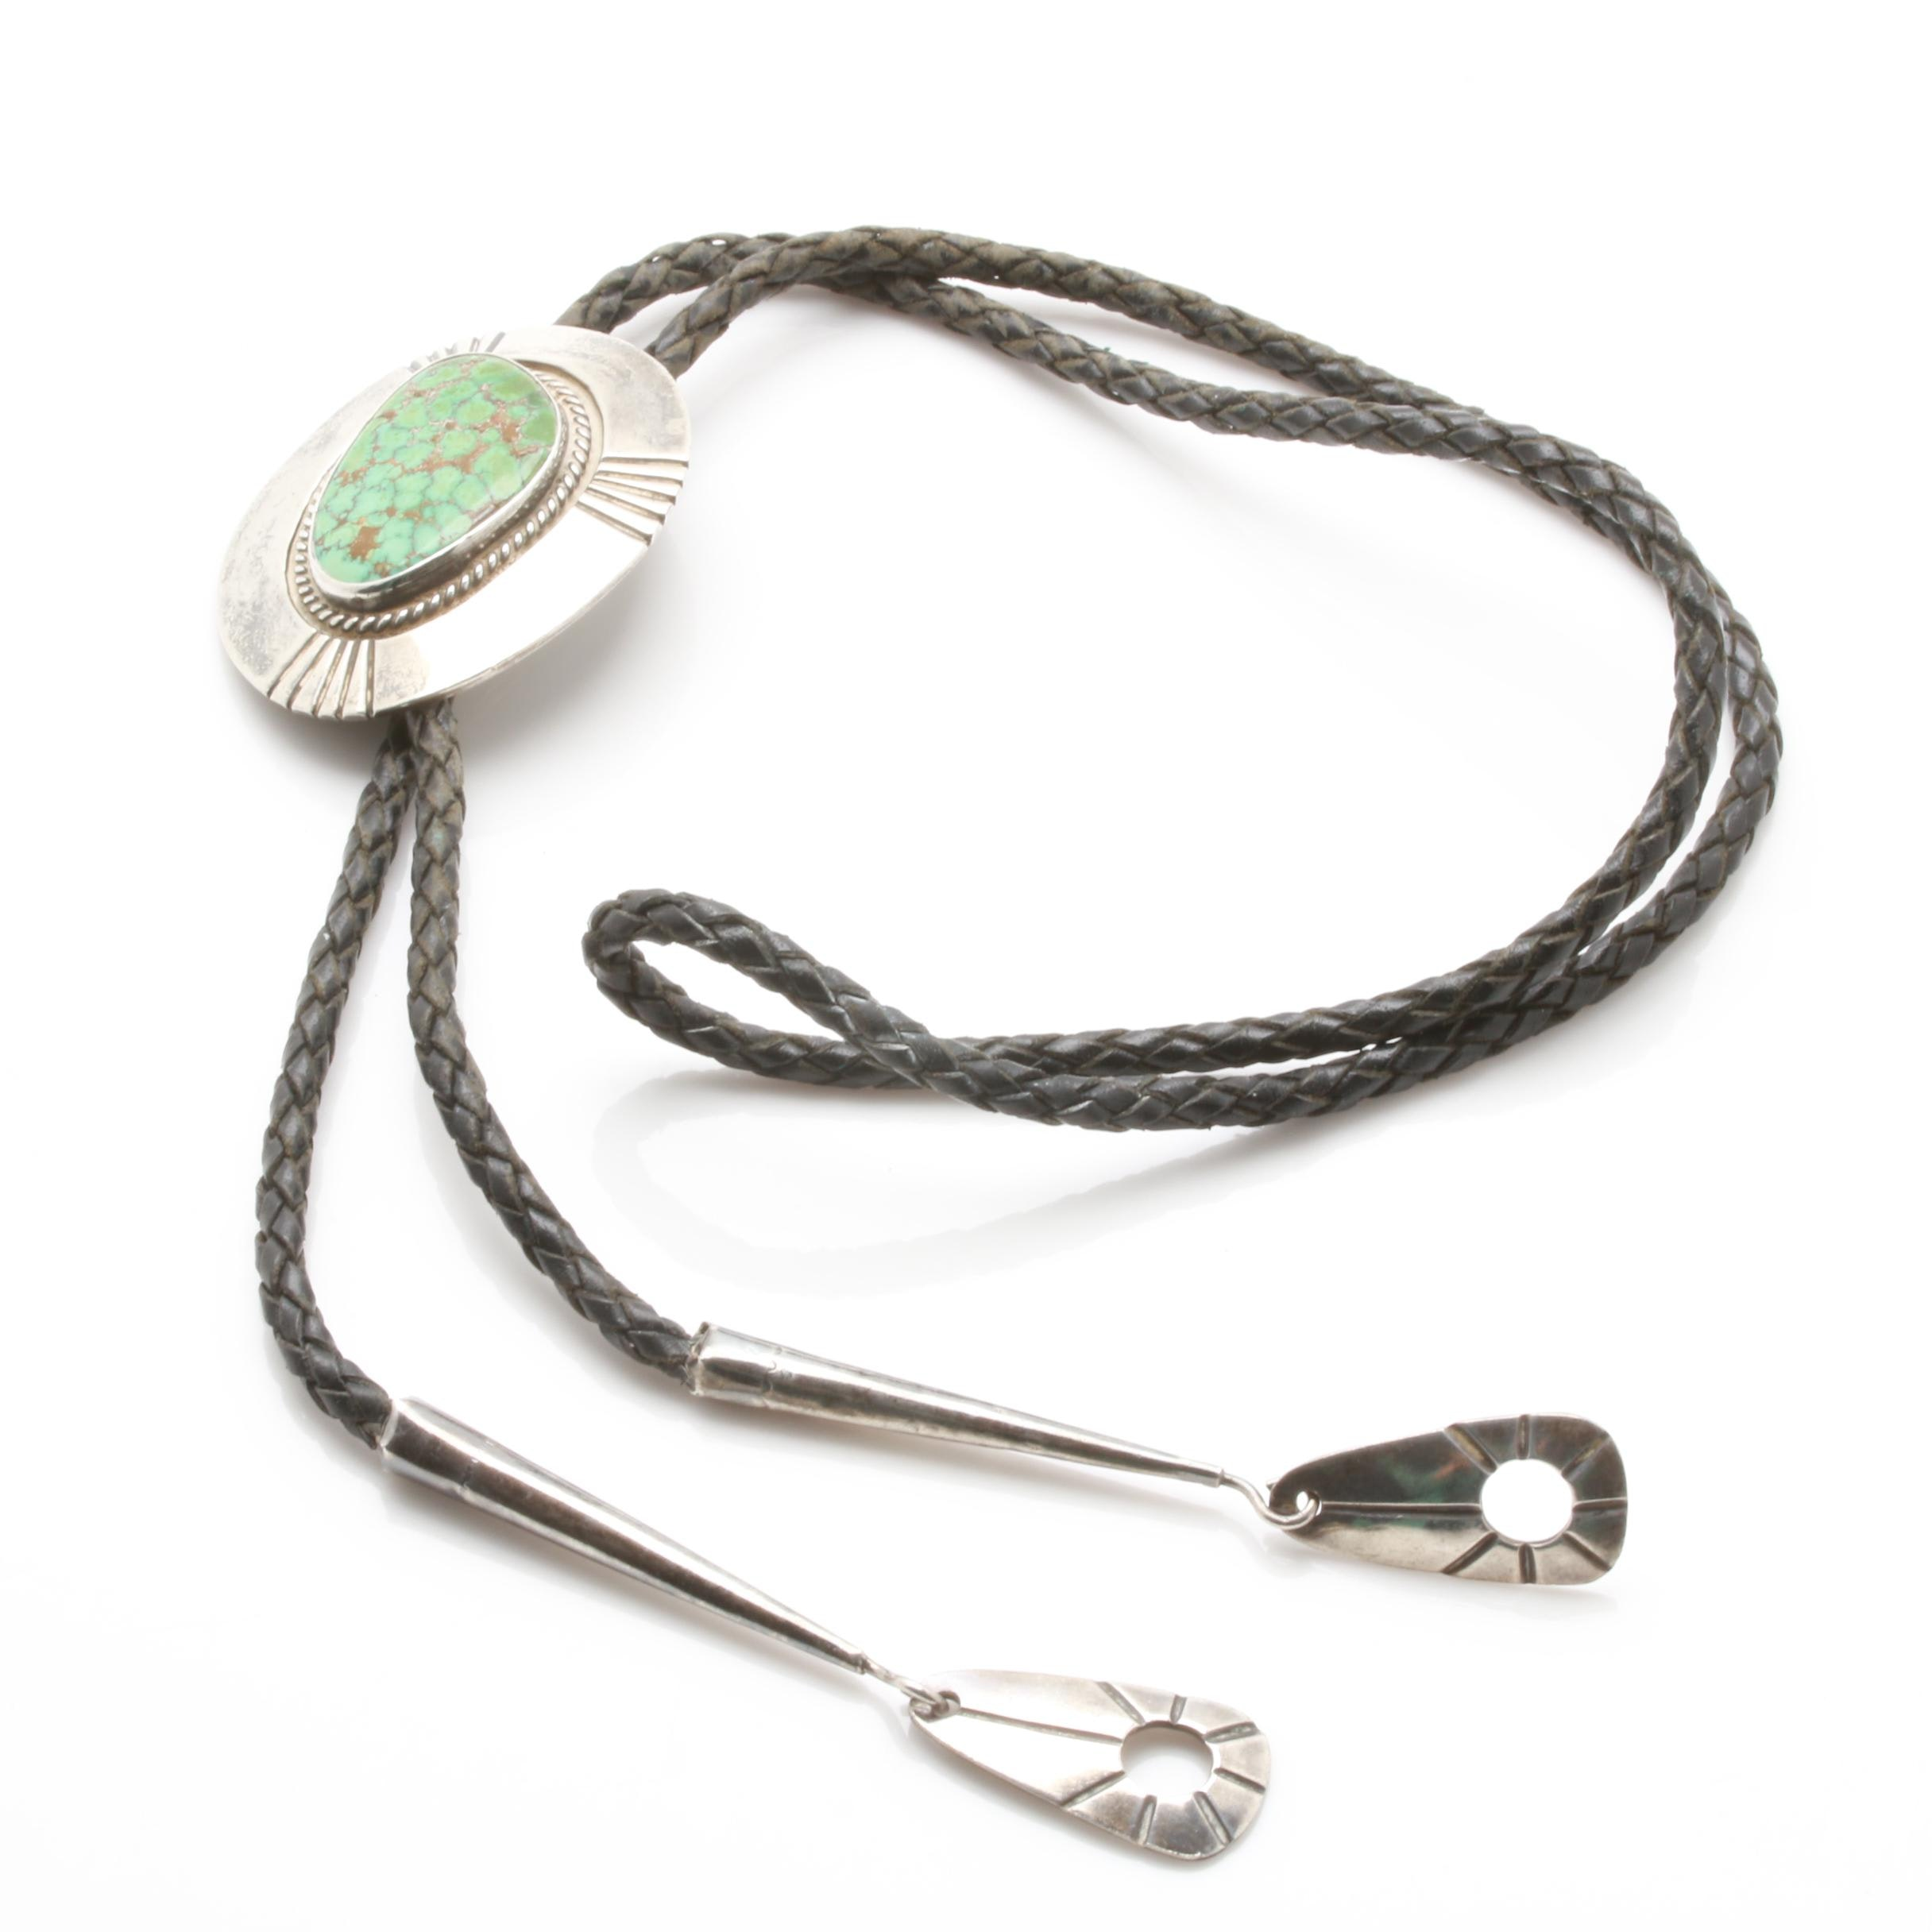 Bennett Sterling Silver Turquoise Bolo Tie